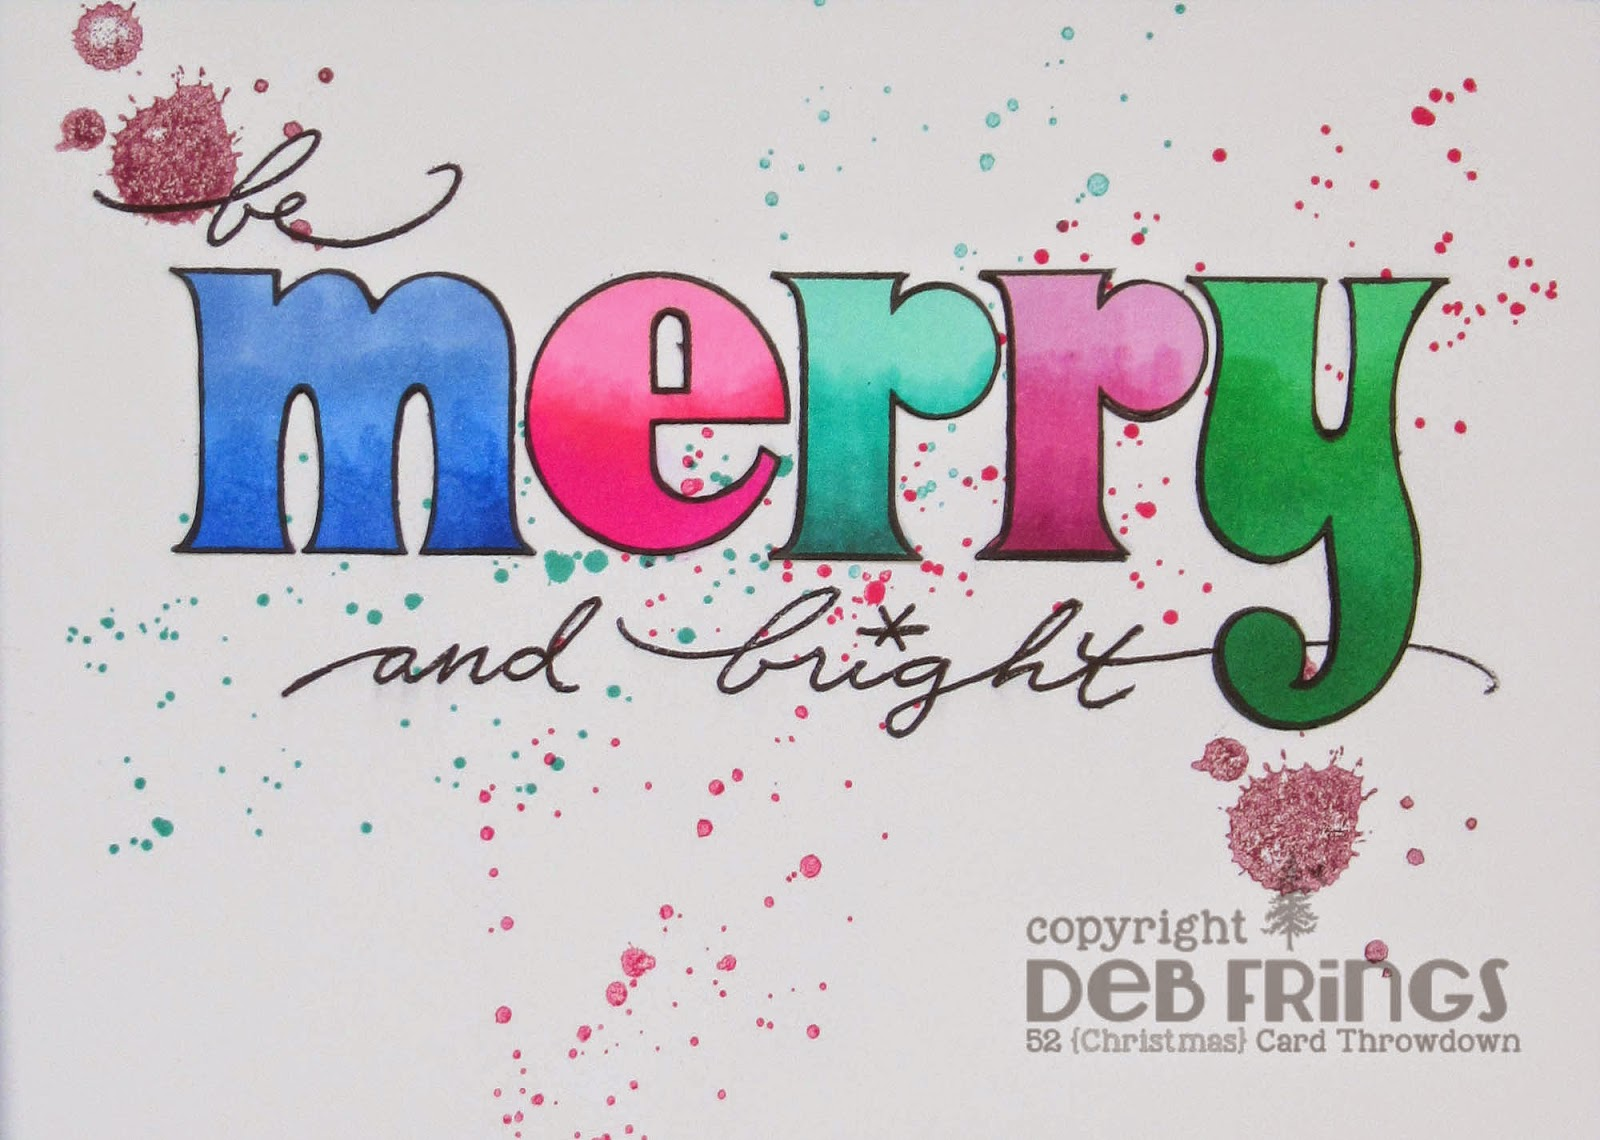 Merry & Bright - photo by Deborah Frings - Deborah's Gems